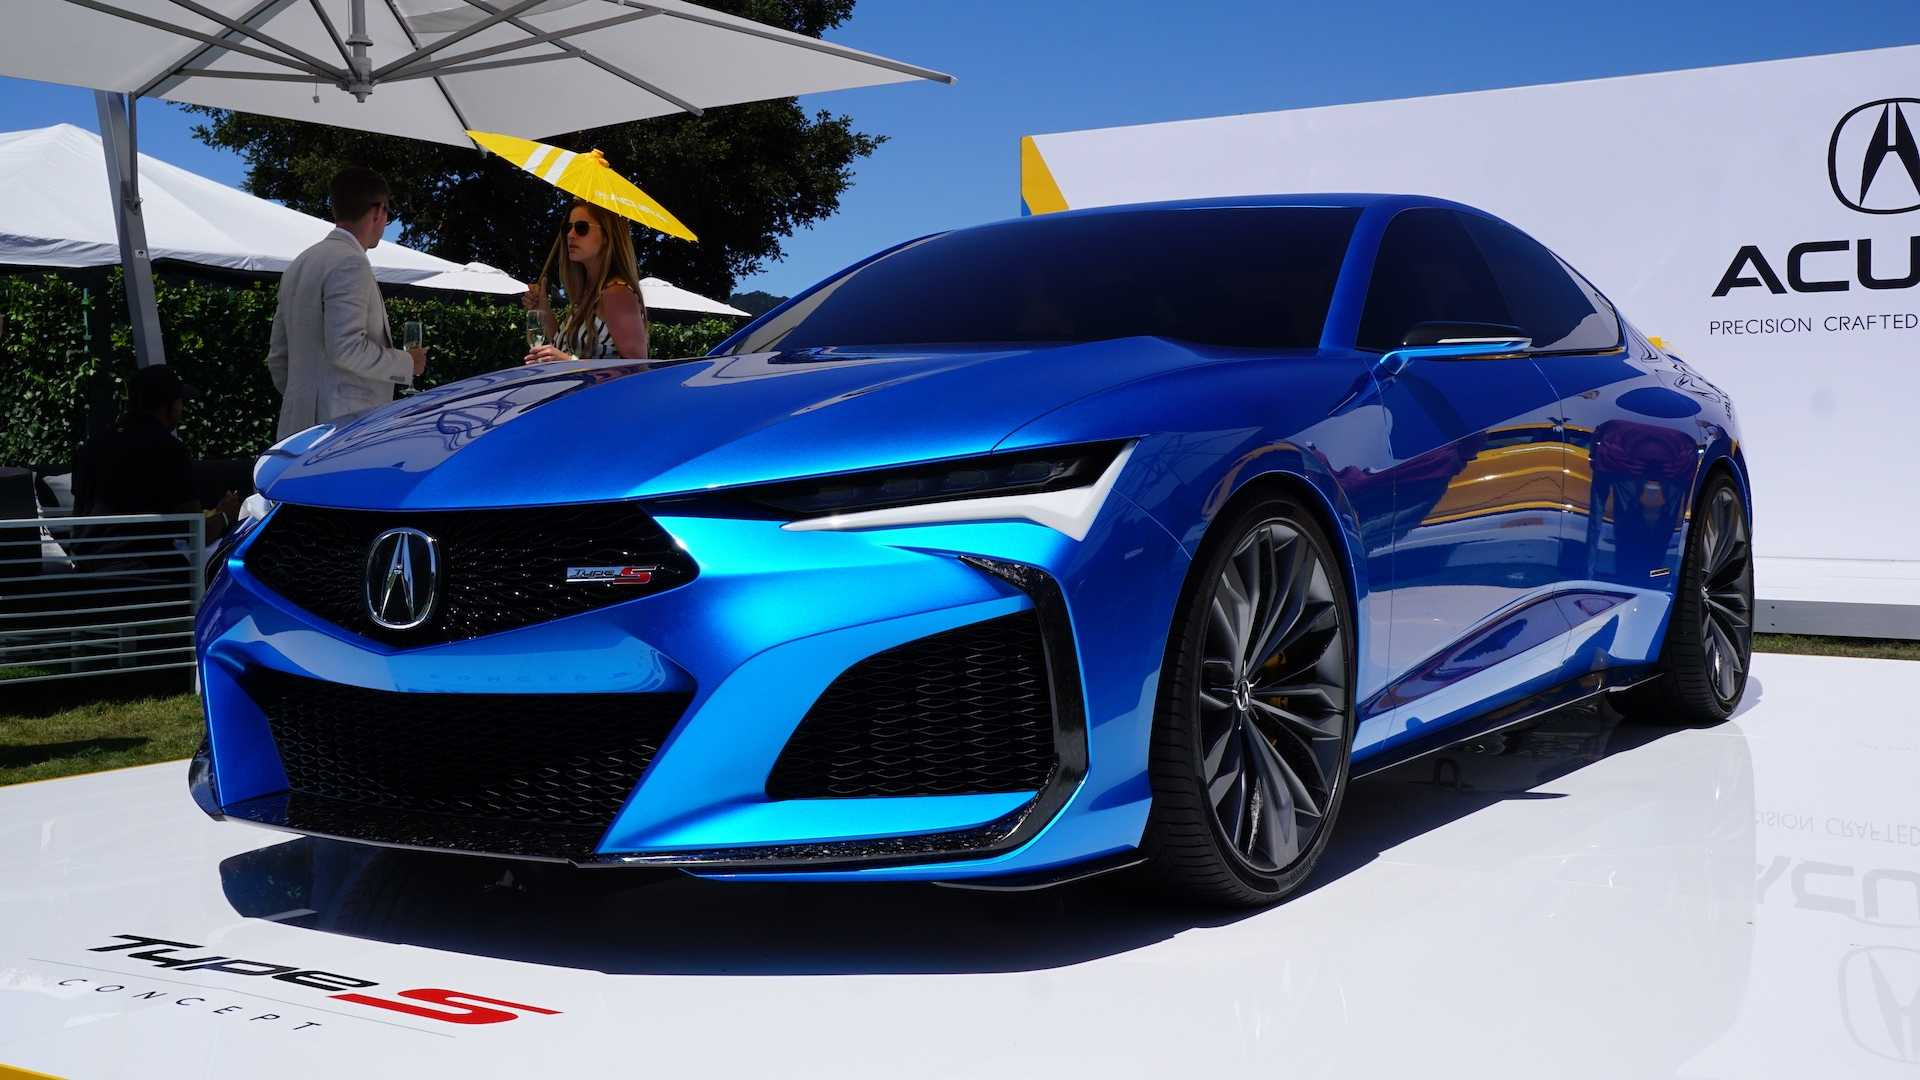 acura type s concept  nsx indy yellow pearl dazzle at pebble beach